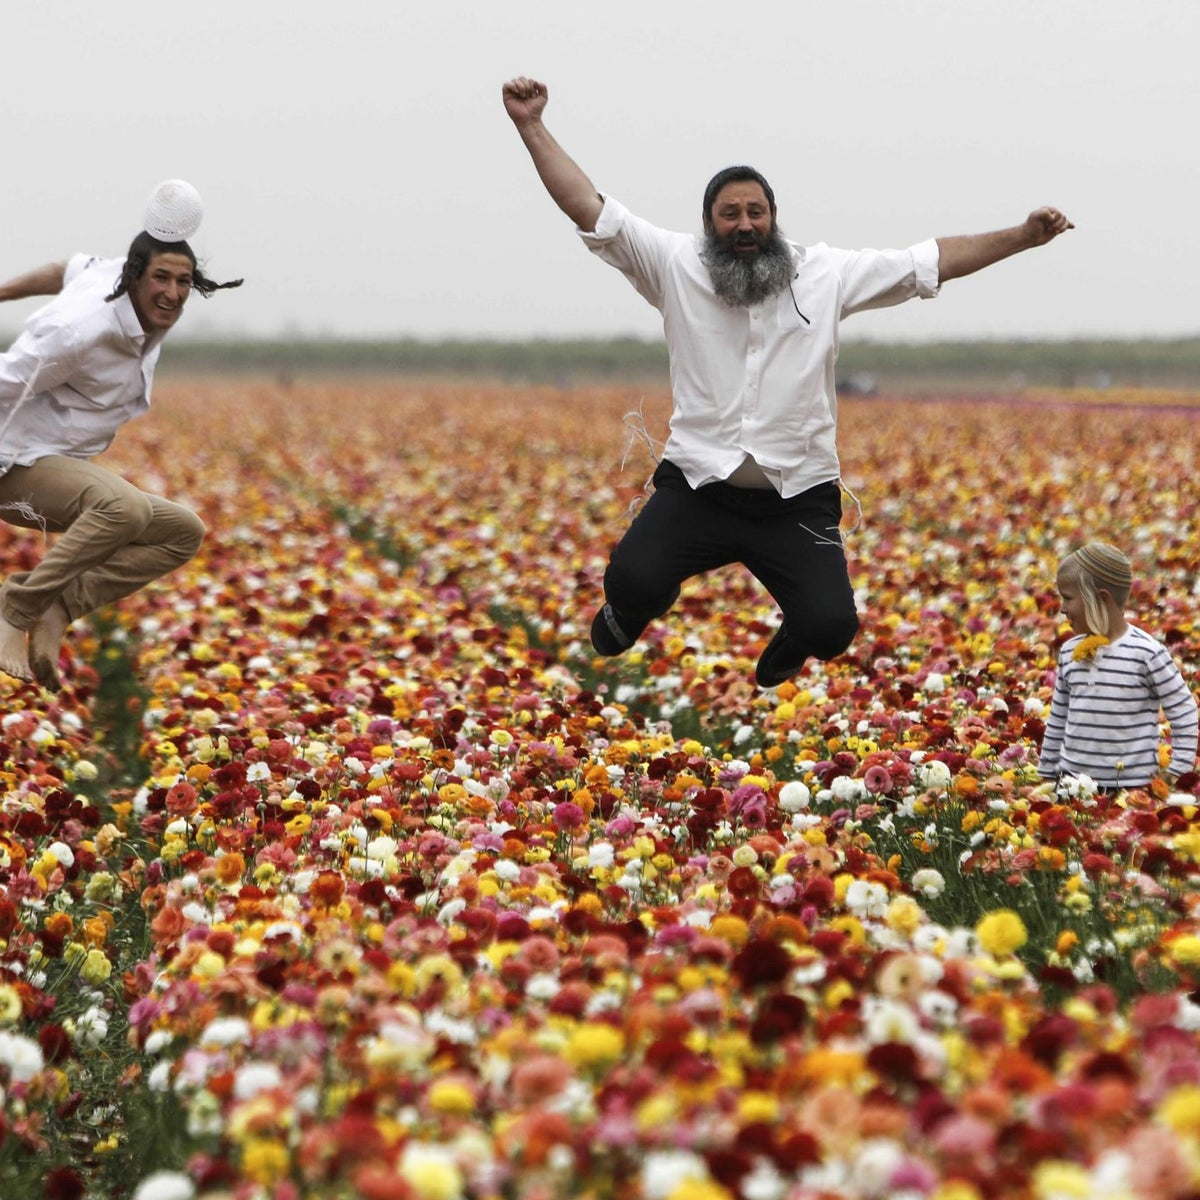 Israelis enjoy the Ranunculus flowers in a field in the southern Israeli Kibbutz of Nir Yitzhak, located along the Israeli-Gaza Strip border, during the Jewish holiday of Pesach (Passover) on April 12, 2017.